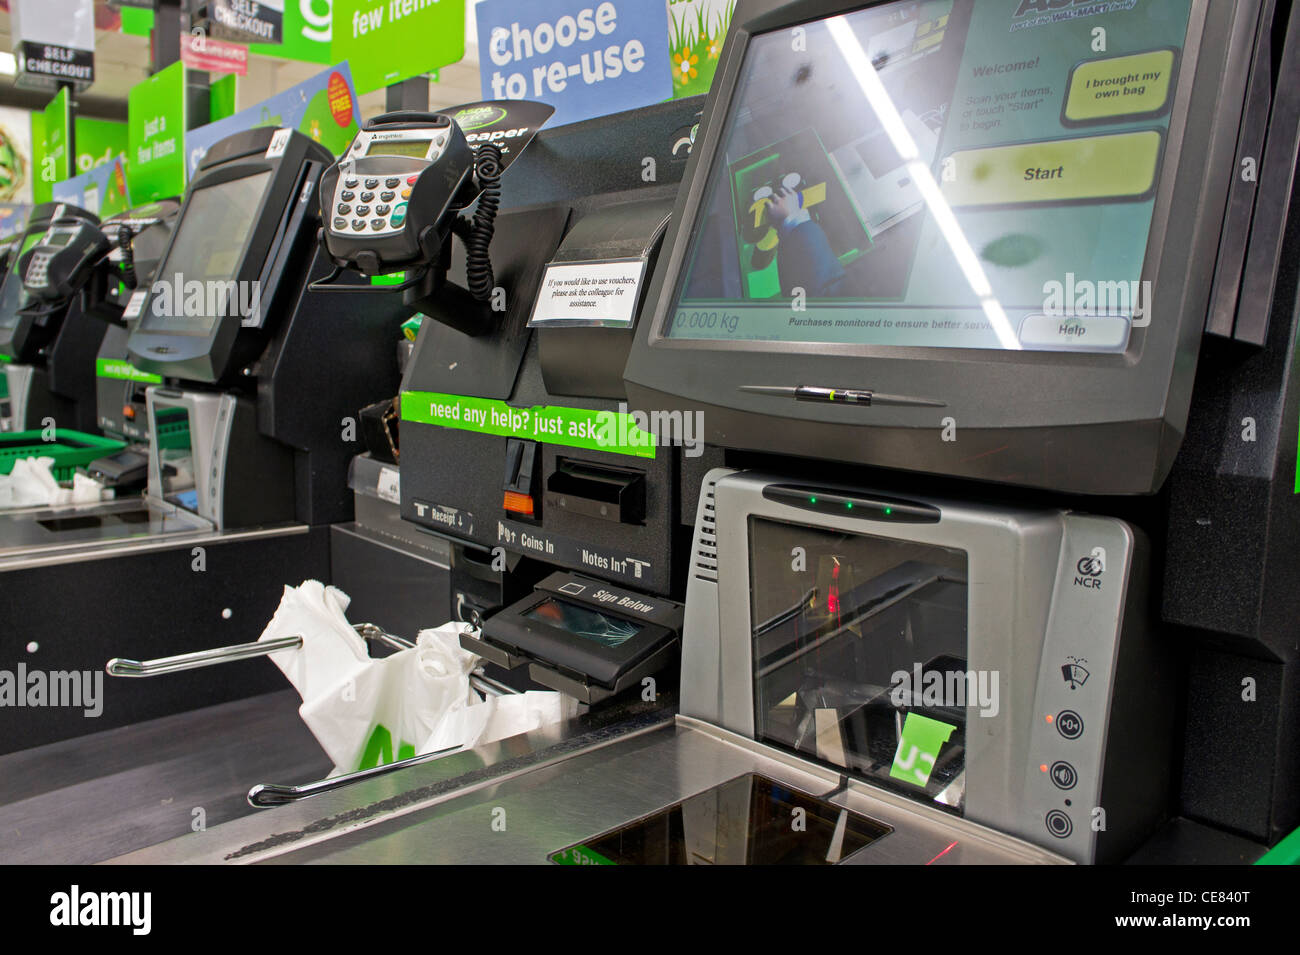 A self service check-out in an Asda store, UK - Stock Image